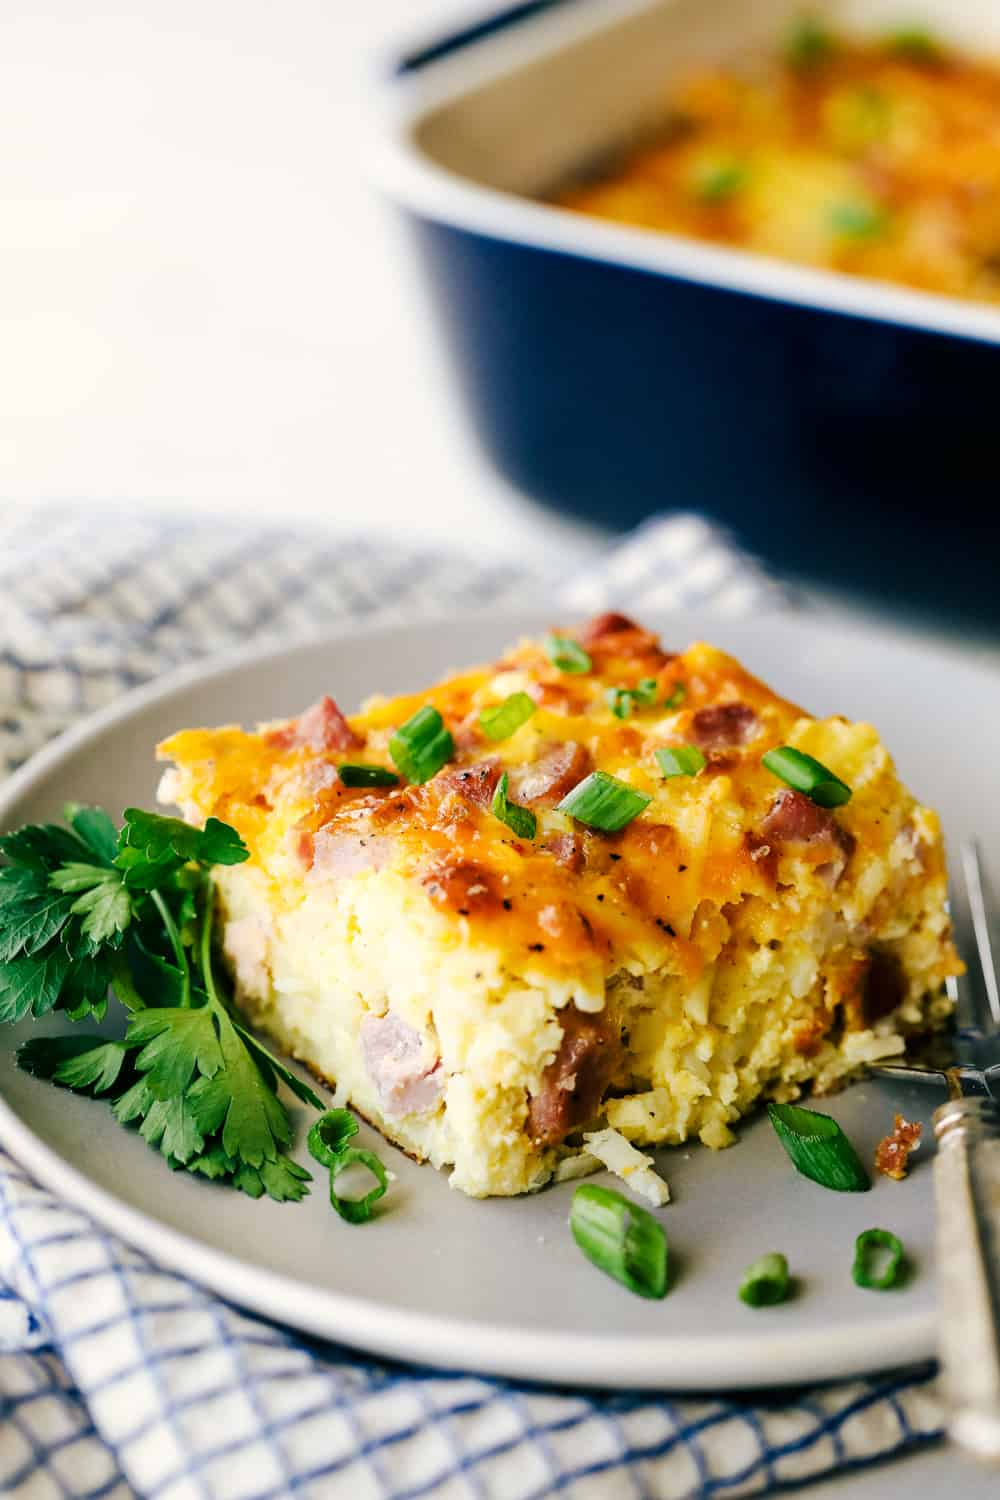 A slice of breakfast casserole on a plate.